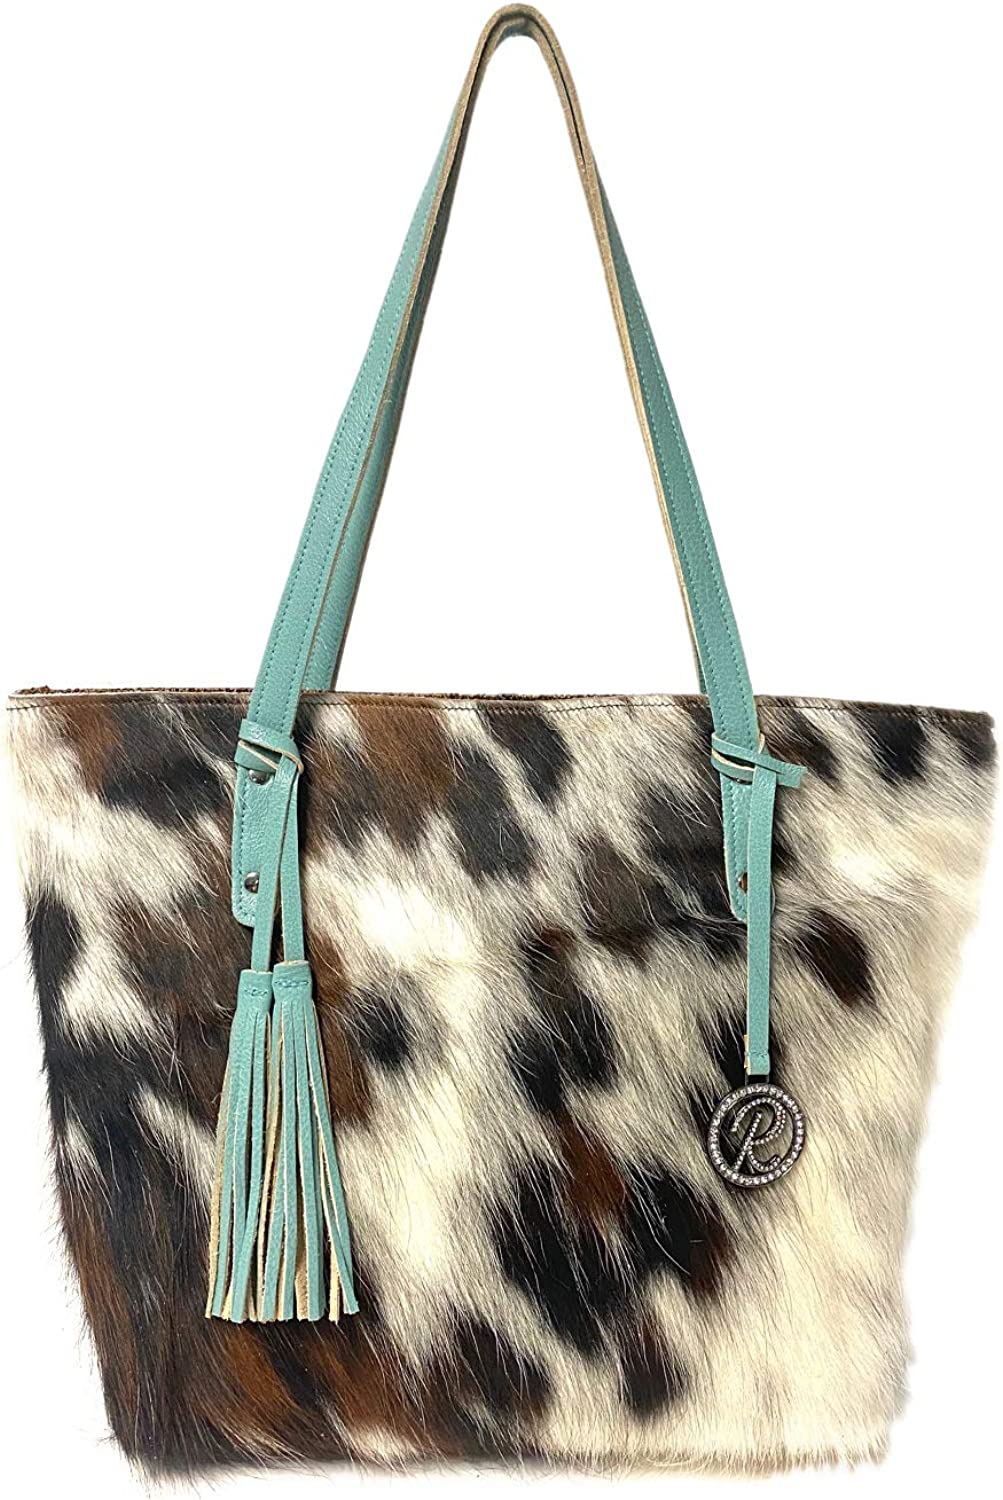 Raviani Tote Bag in brown and white hair on cowhide Leather with Turquoise trim & Tassels Made In USA